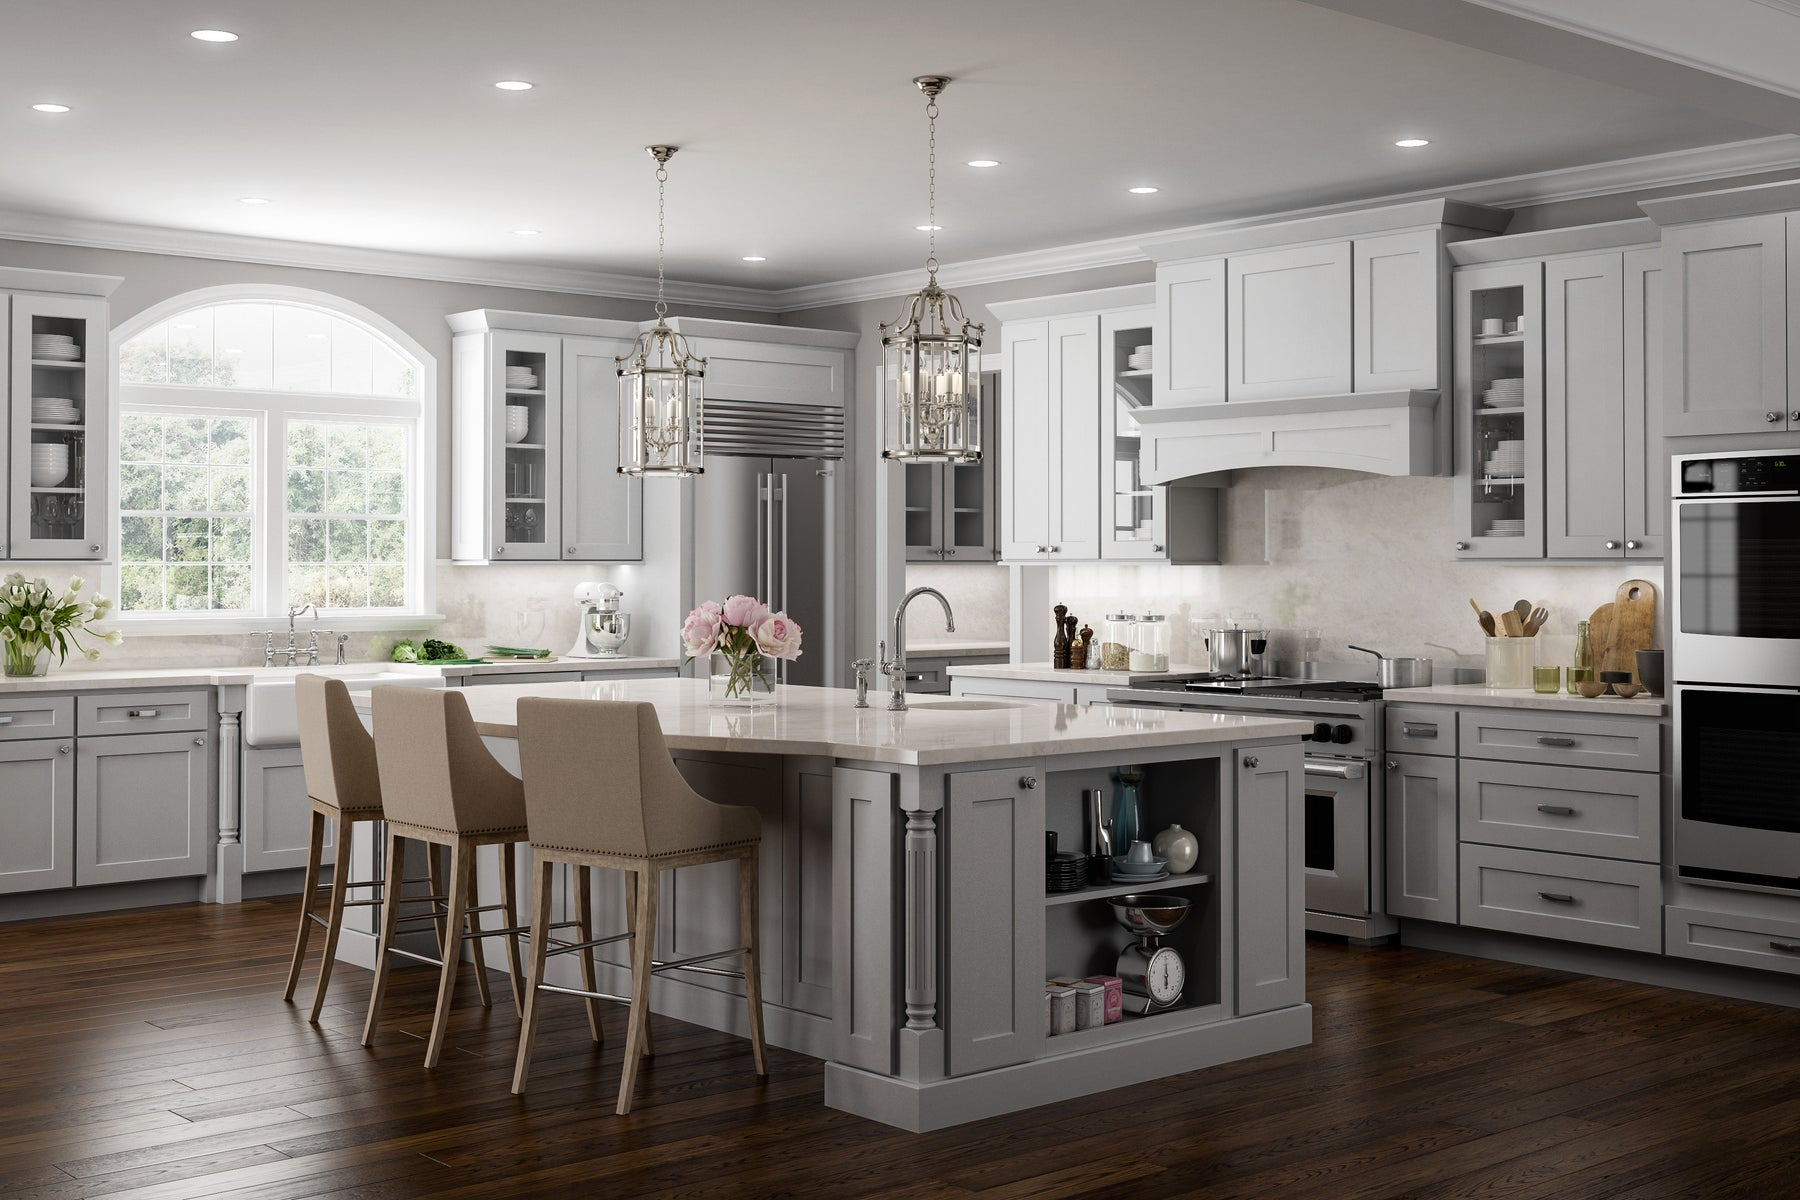 Kitchen Cabinets Greenville Sc ~ tboots.us